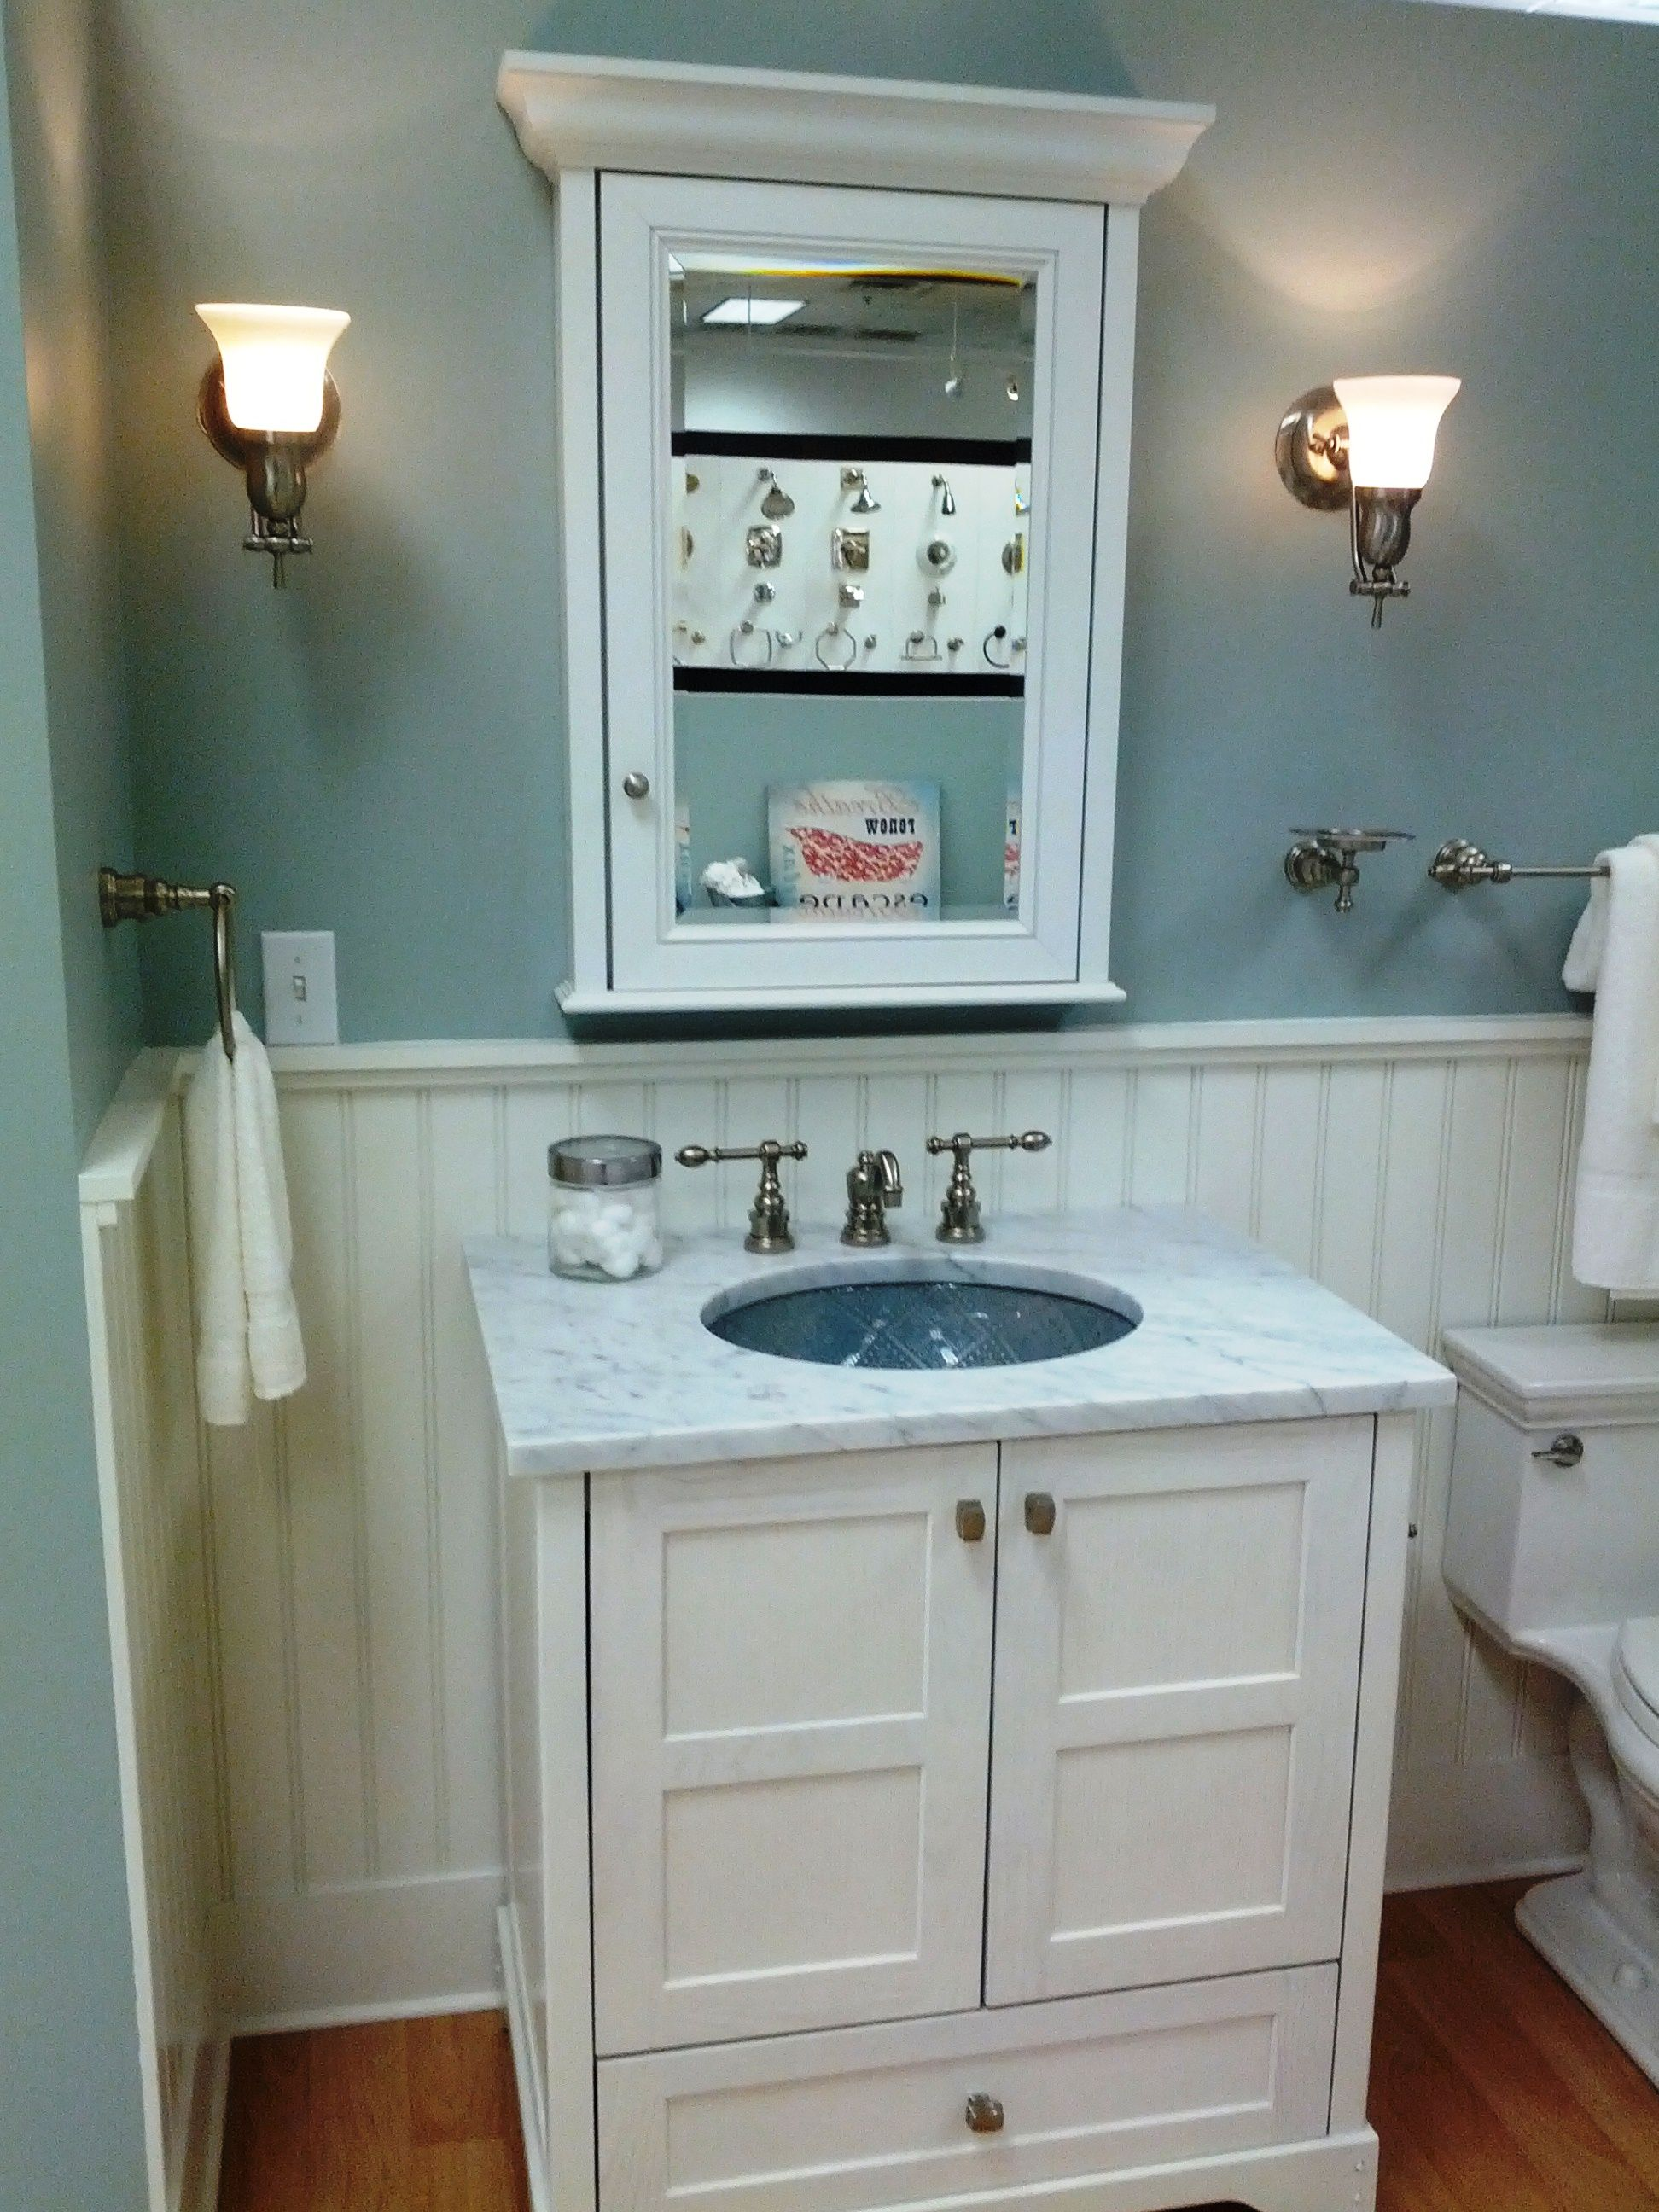 room colors wainscoting   White wainscoting tub base with medium blue wall  color a  Small Bathroom DecoratingBathroom RedecoratingIdeas. room colors wainscoting   White wainscoting tub base with medium